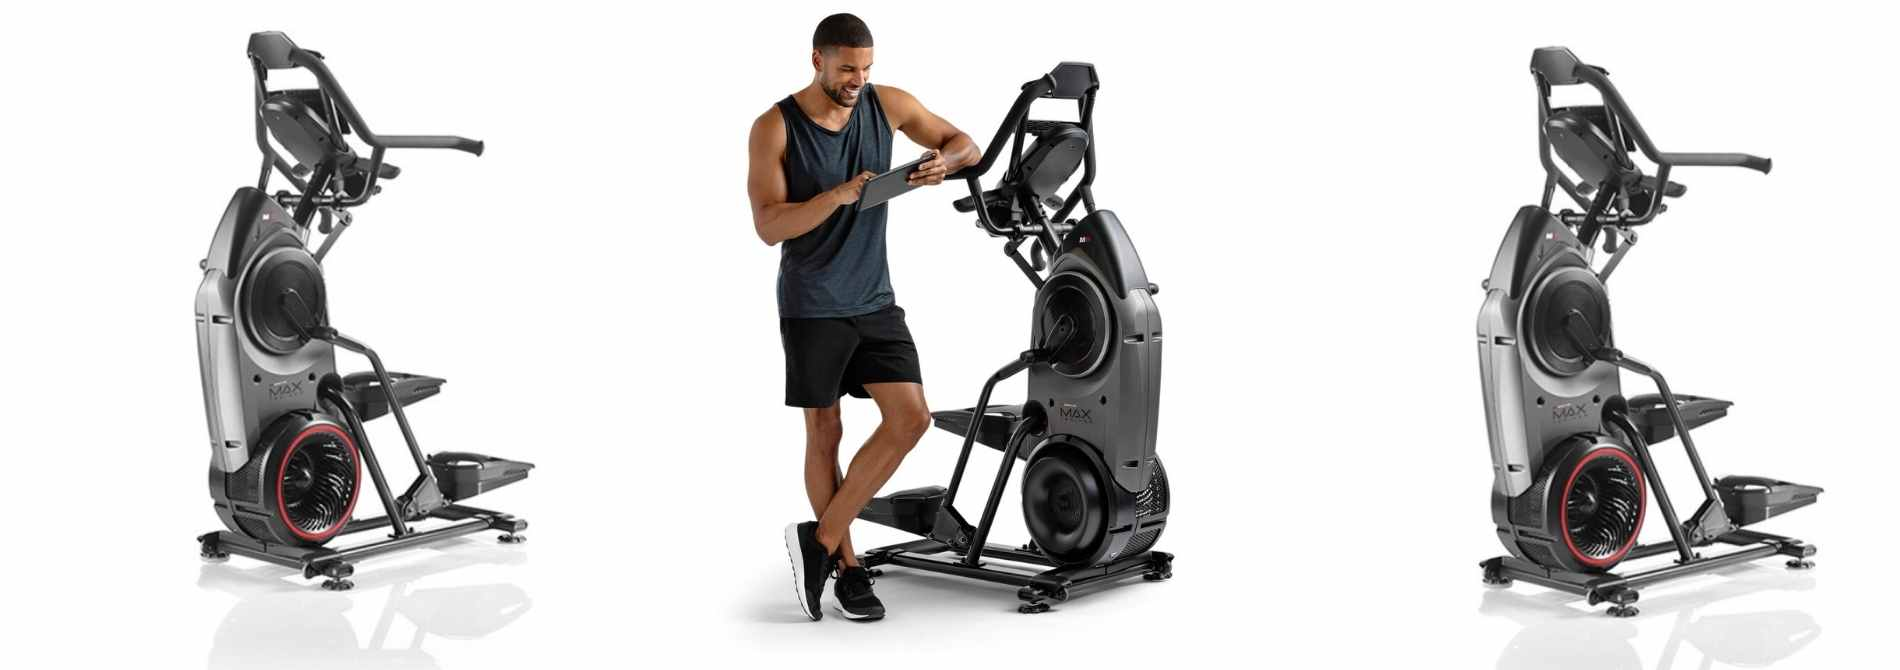 Bowflex Max Trainer 8 Overview